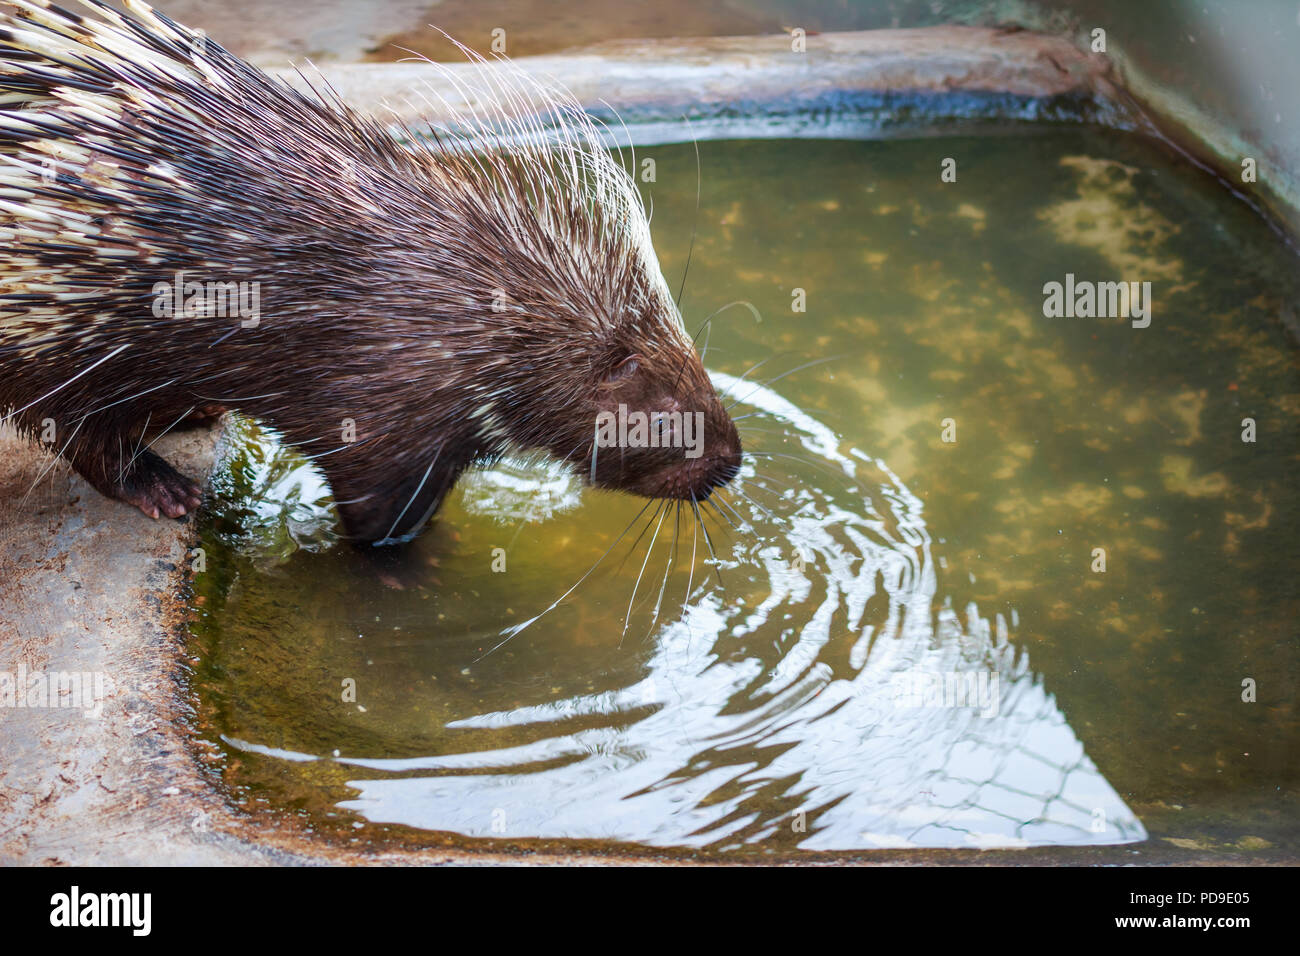 Porcupine in zoo. - Stock Image